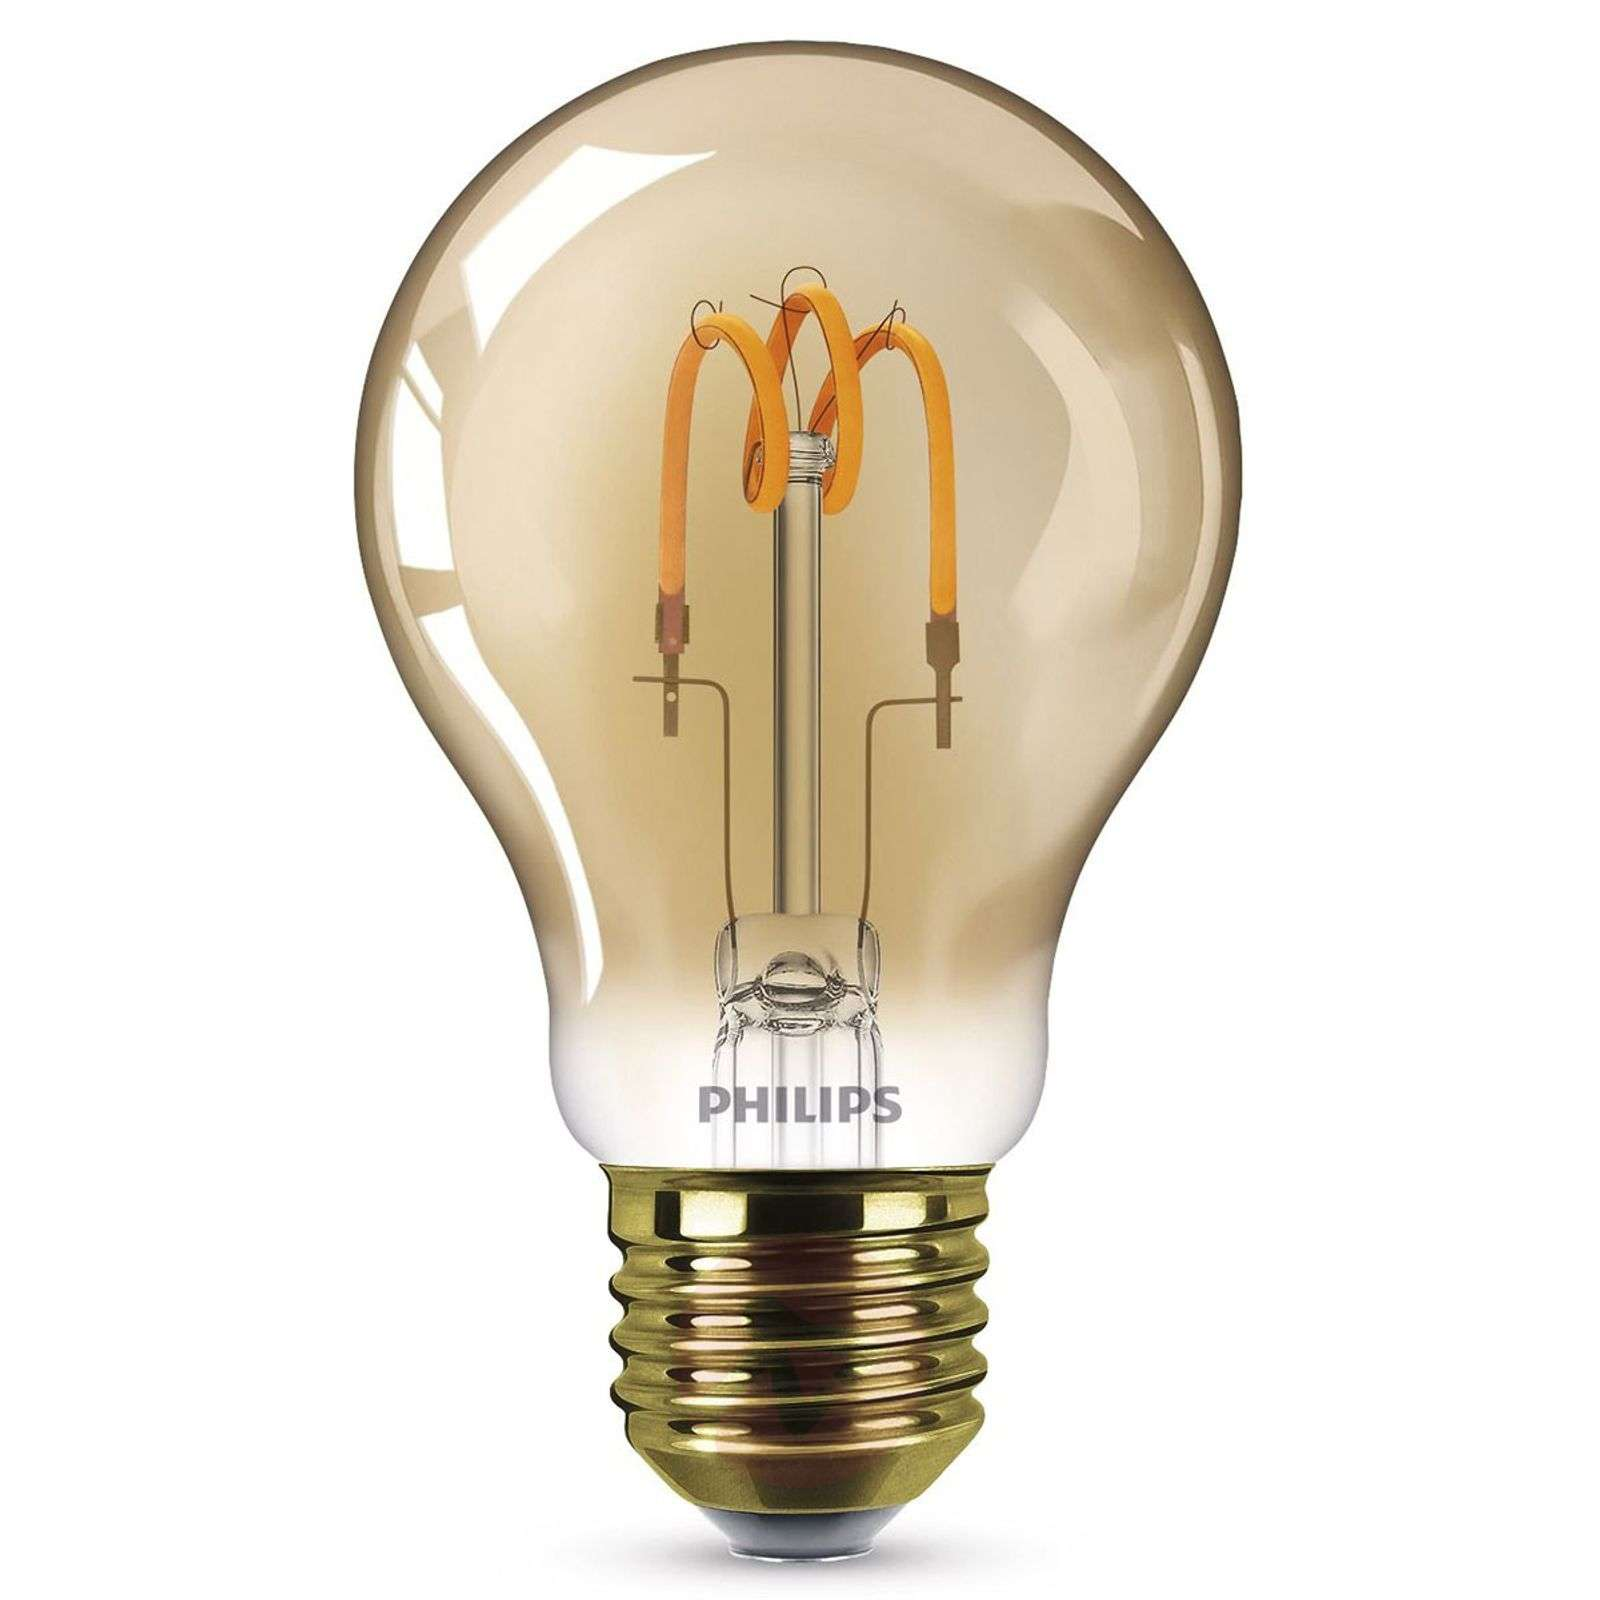 E27 2,3 W LED lamp Curved Line, warmwit, goud-7530763-01